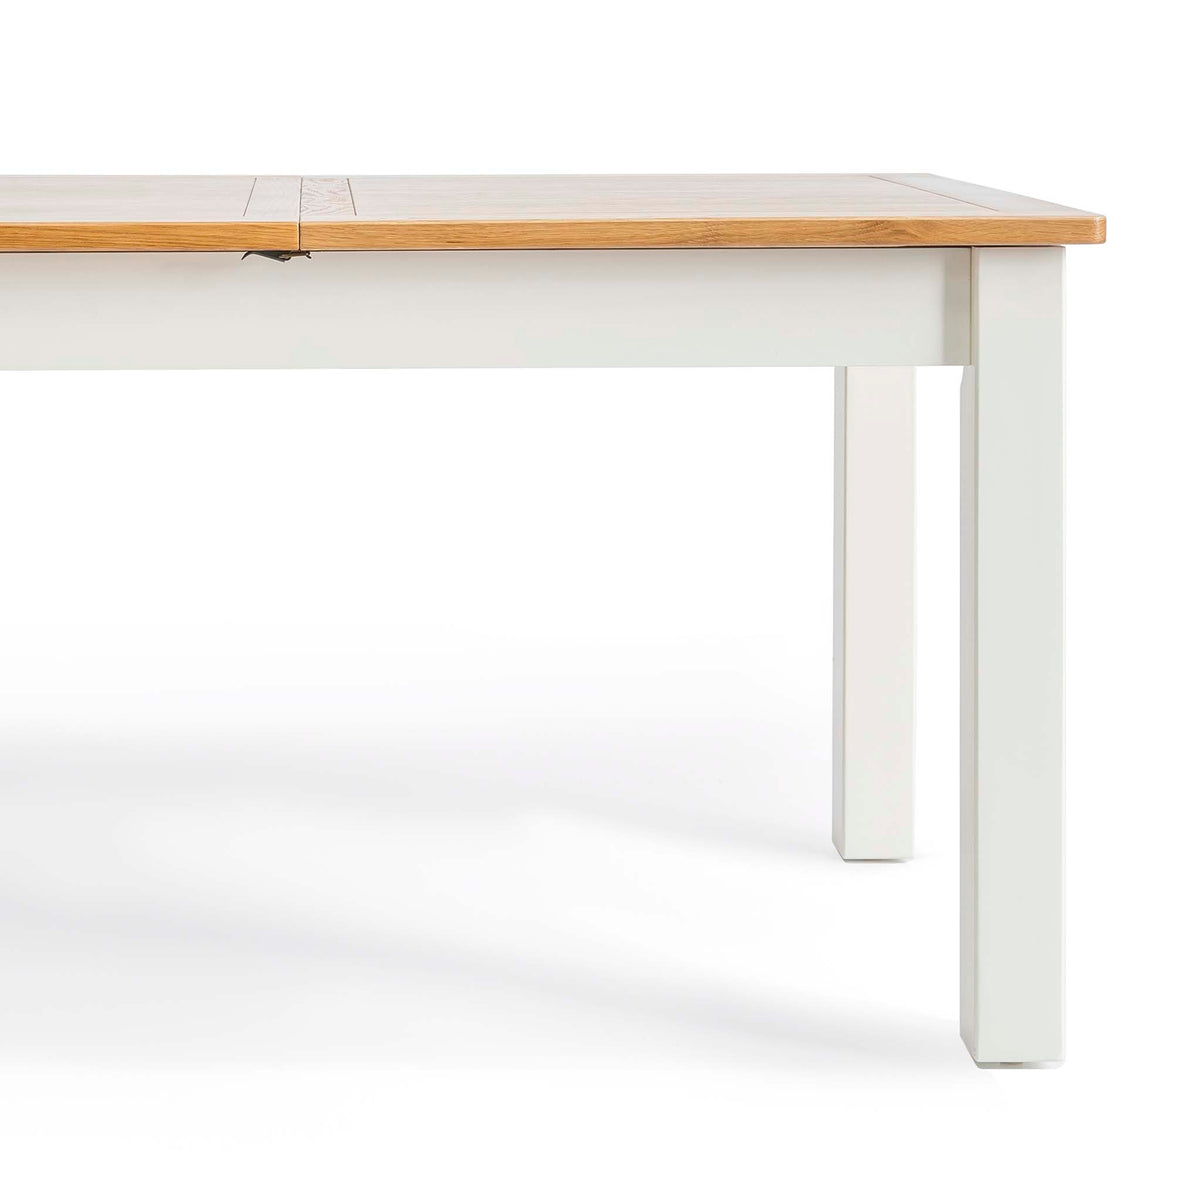 Padstow White Wooden Extending Dining Table -  Close up of legs of table